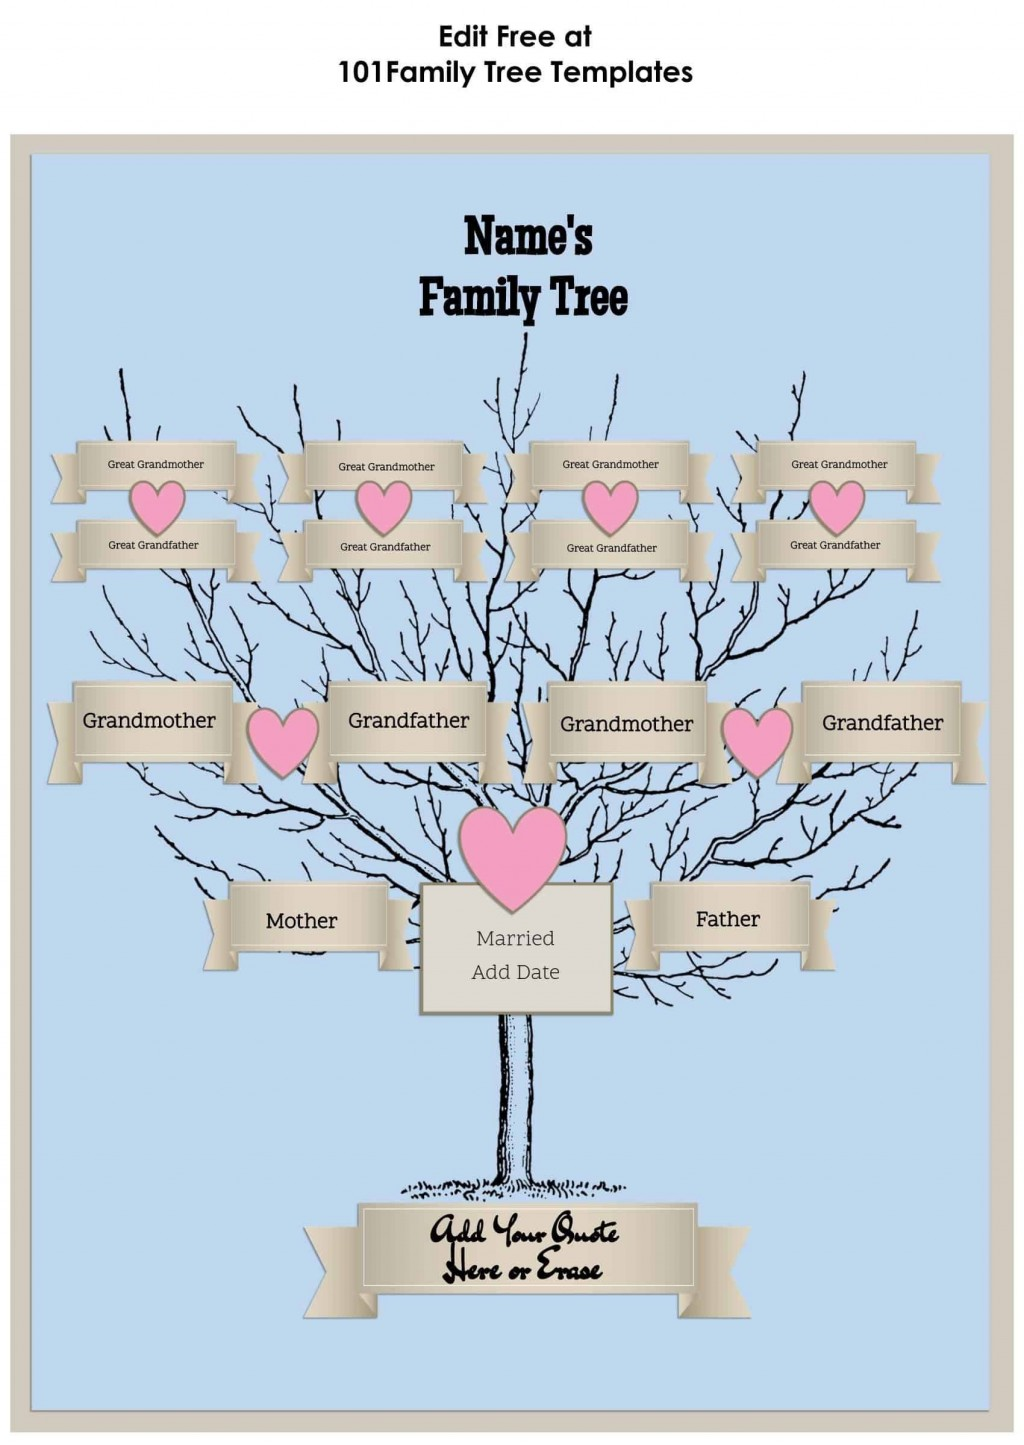 007 Unique Editable Family Tree Template Online Free High Resolution Large